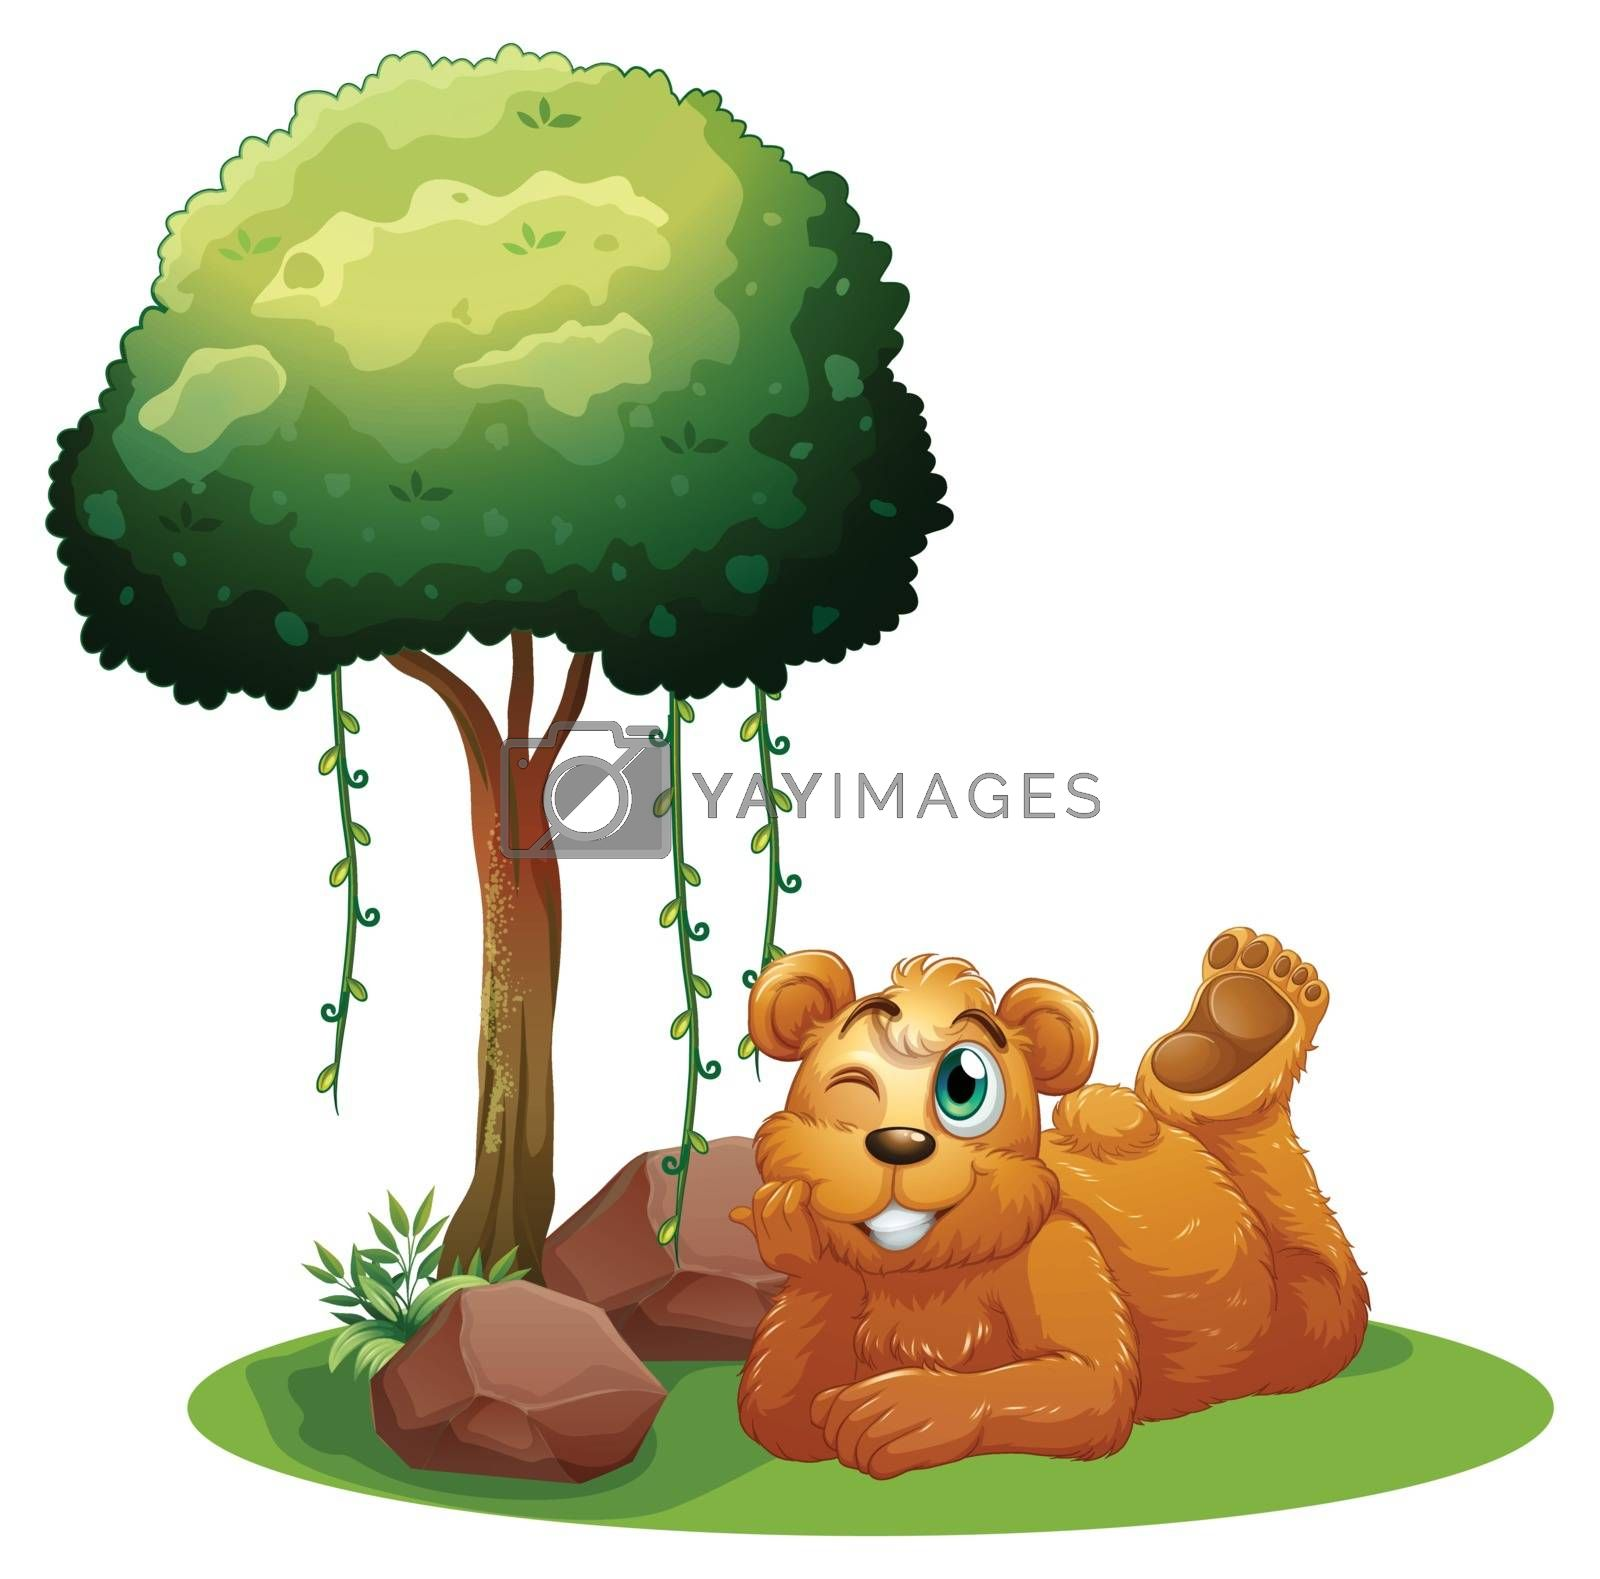 Illustration of a smiling brown bear lying near the tree on a white background